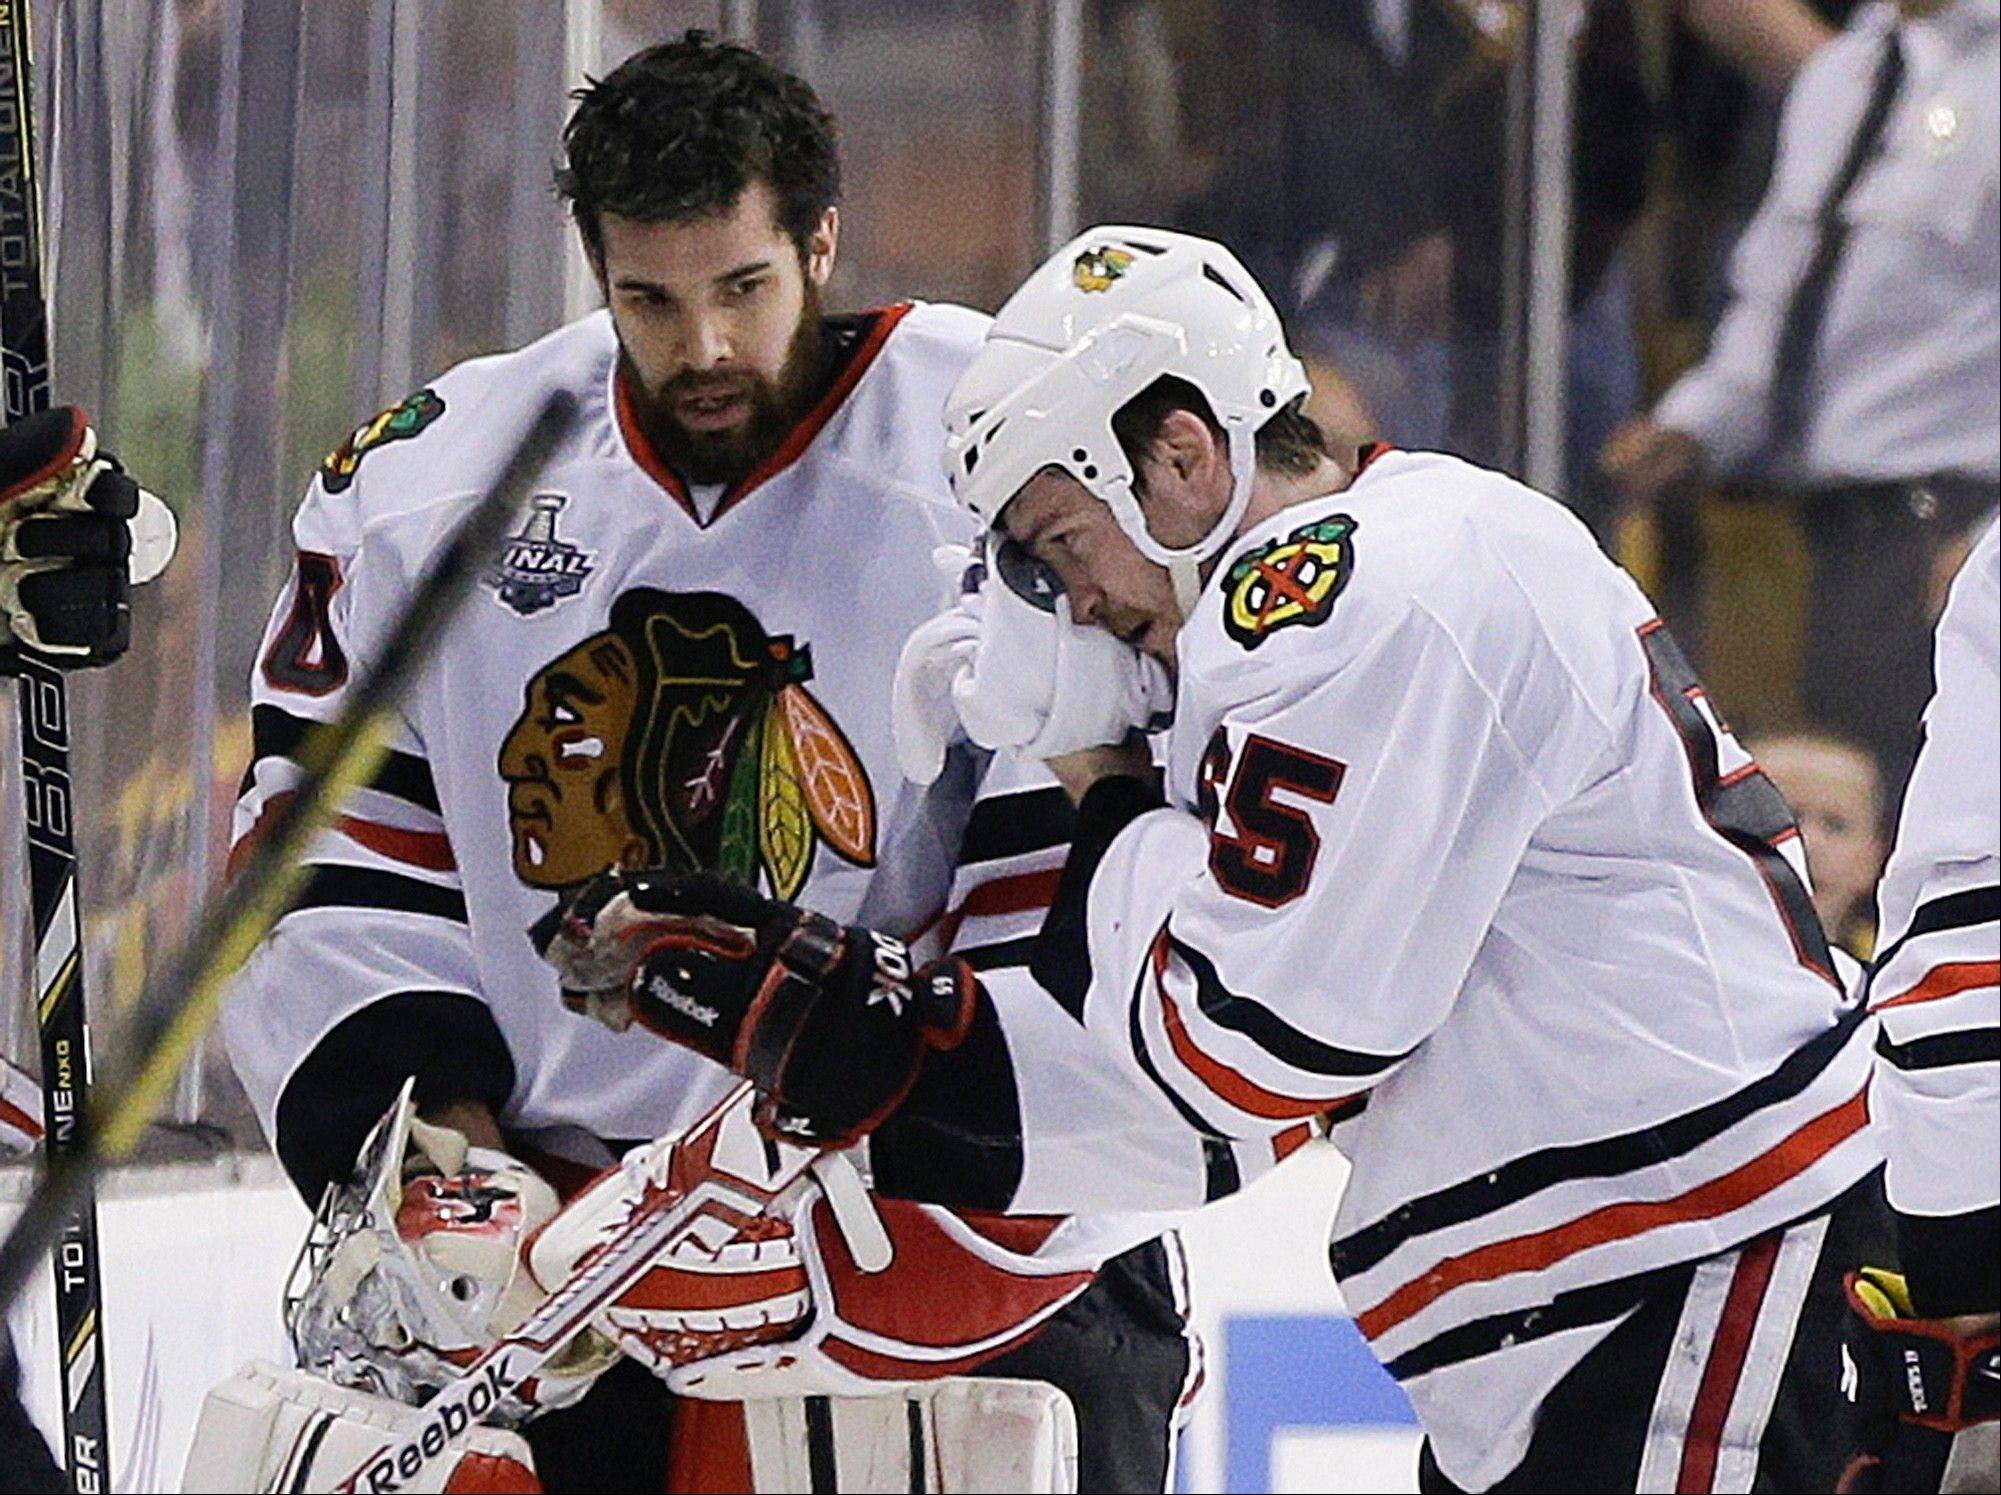 Chicago Blackhawks goalie Corey Crawford, left, watches as Chicago Blackhawks center Andrew Shaw (65) skates to the bench after taking a puck to the face against the Boston Bruins during the first period in Game 6 of Stanley Cup Finals Monday.